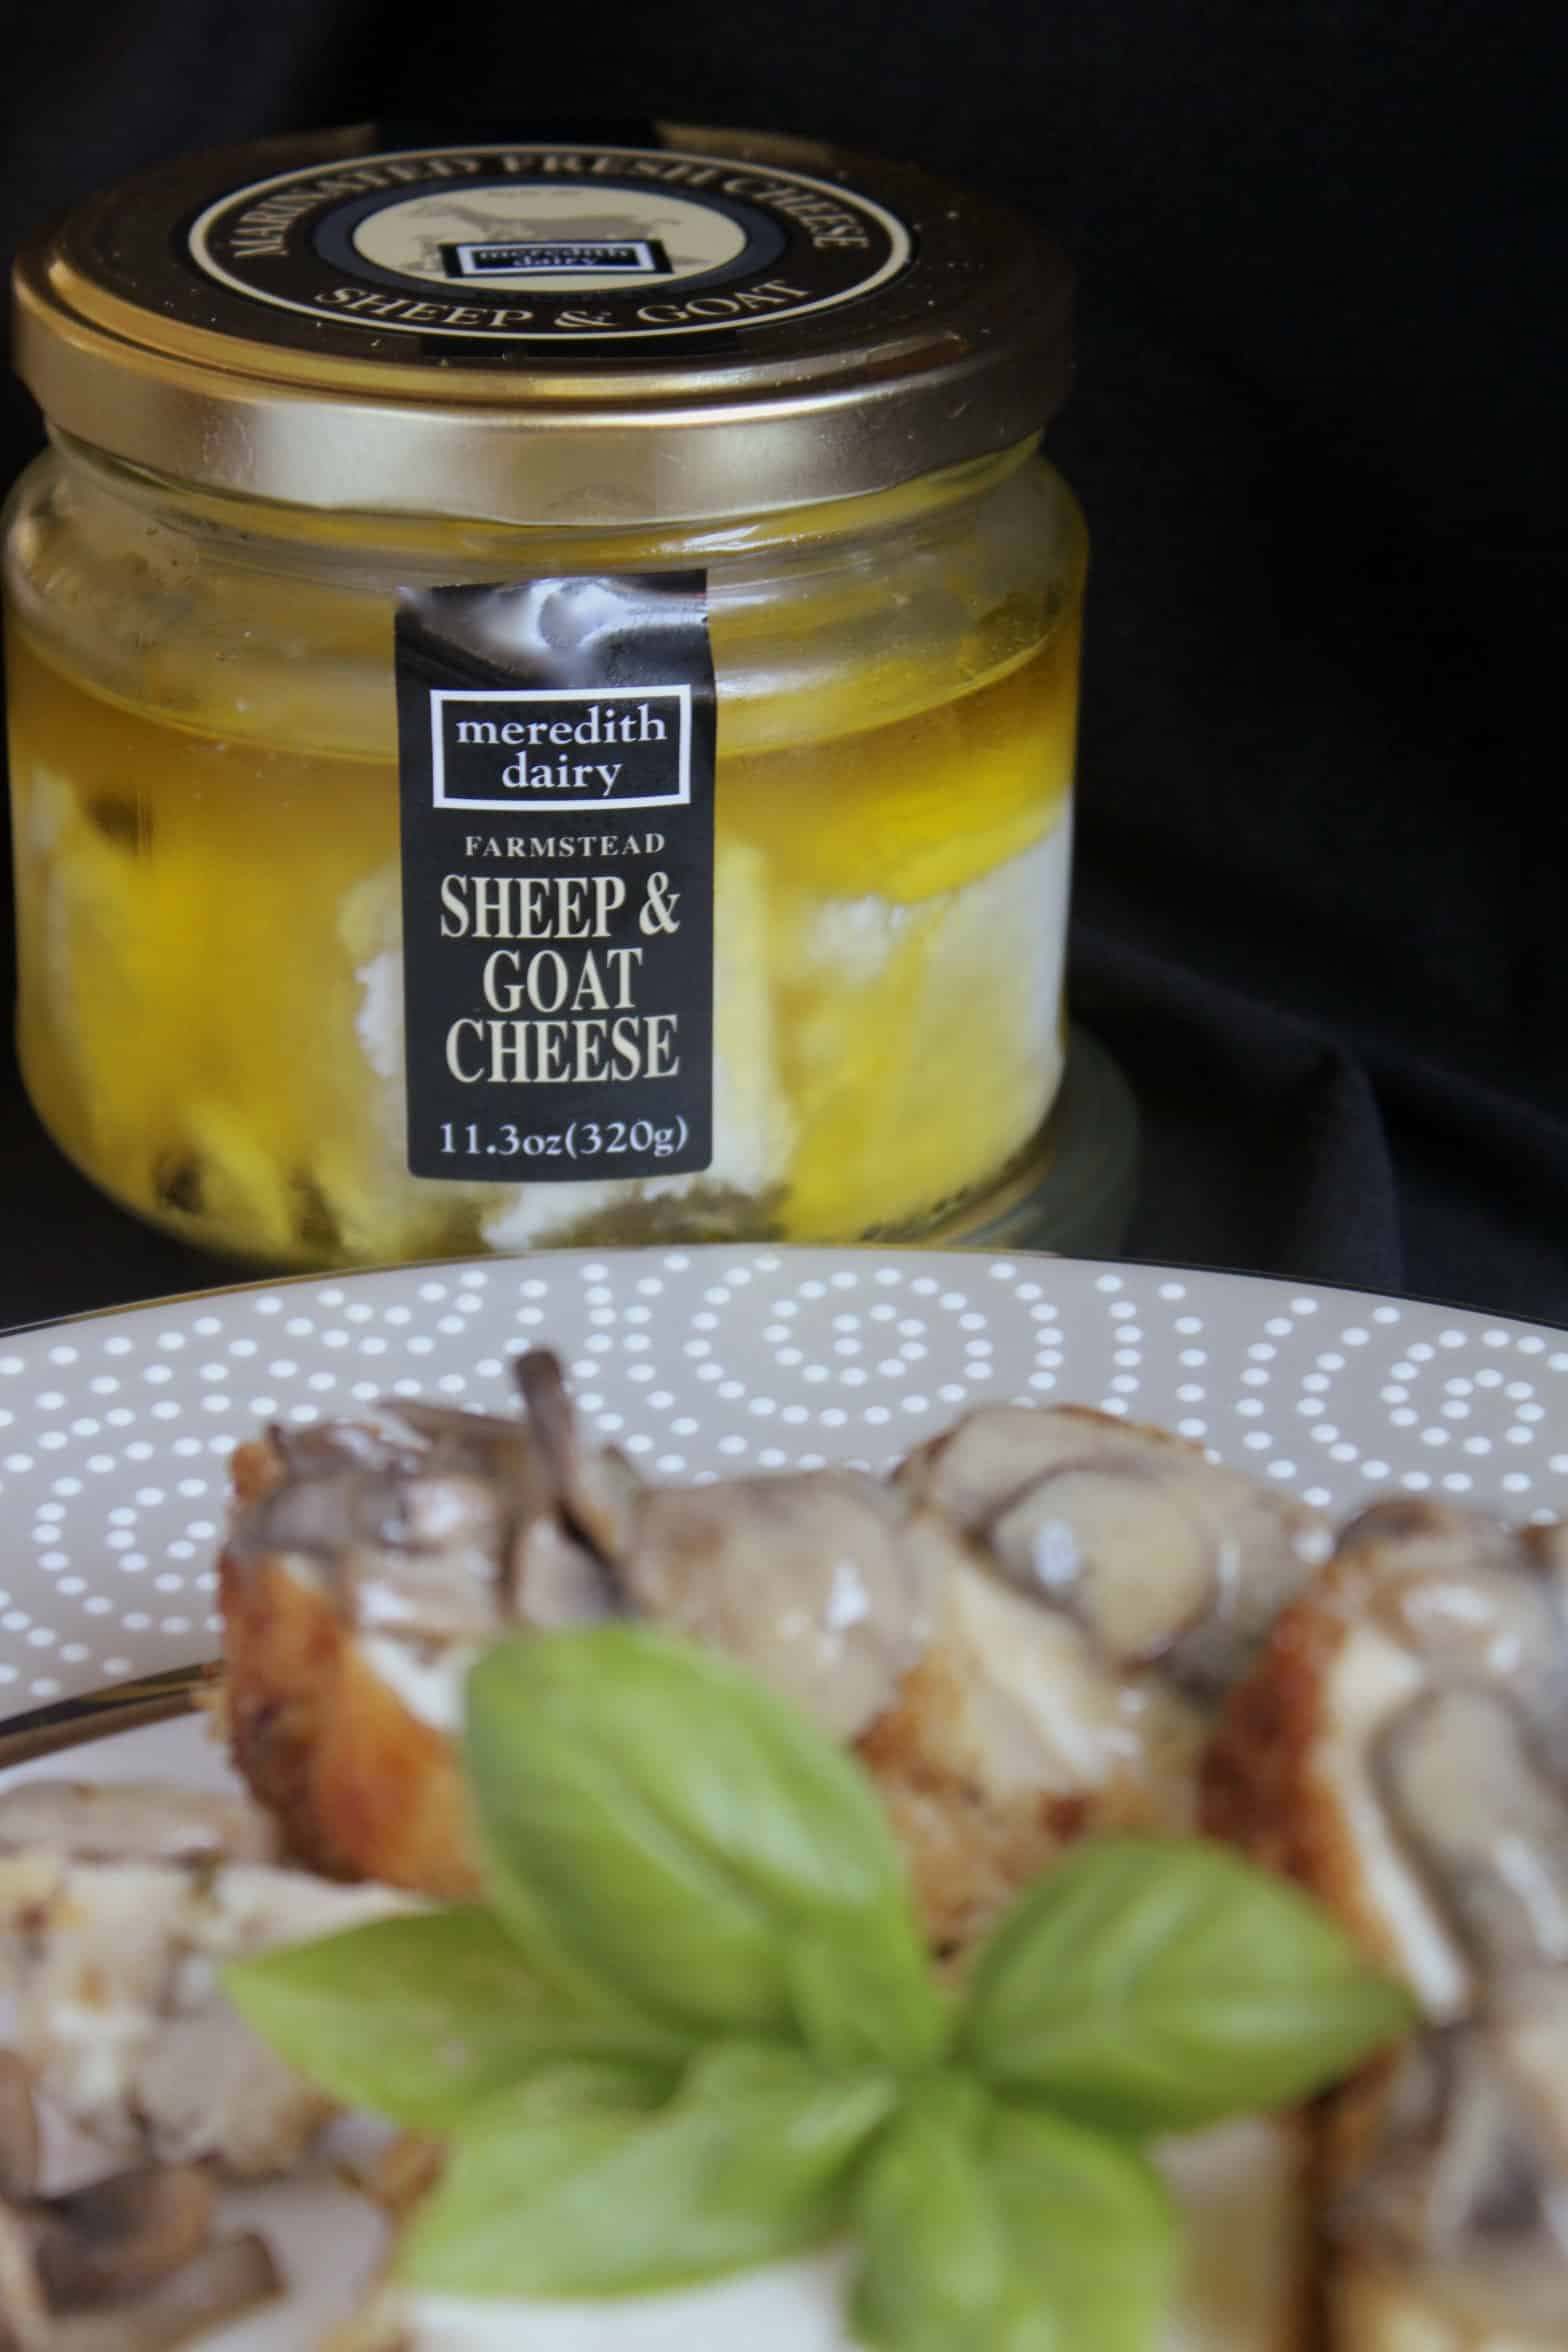 meredith dairy marinated goat cheese jar next to a plate of food